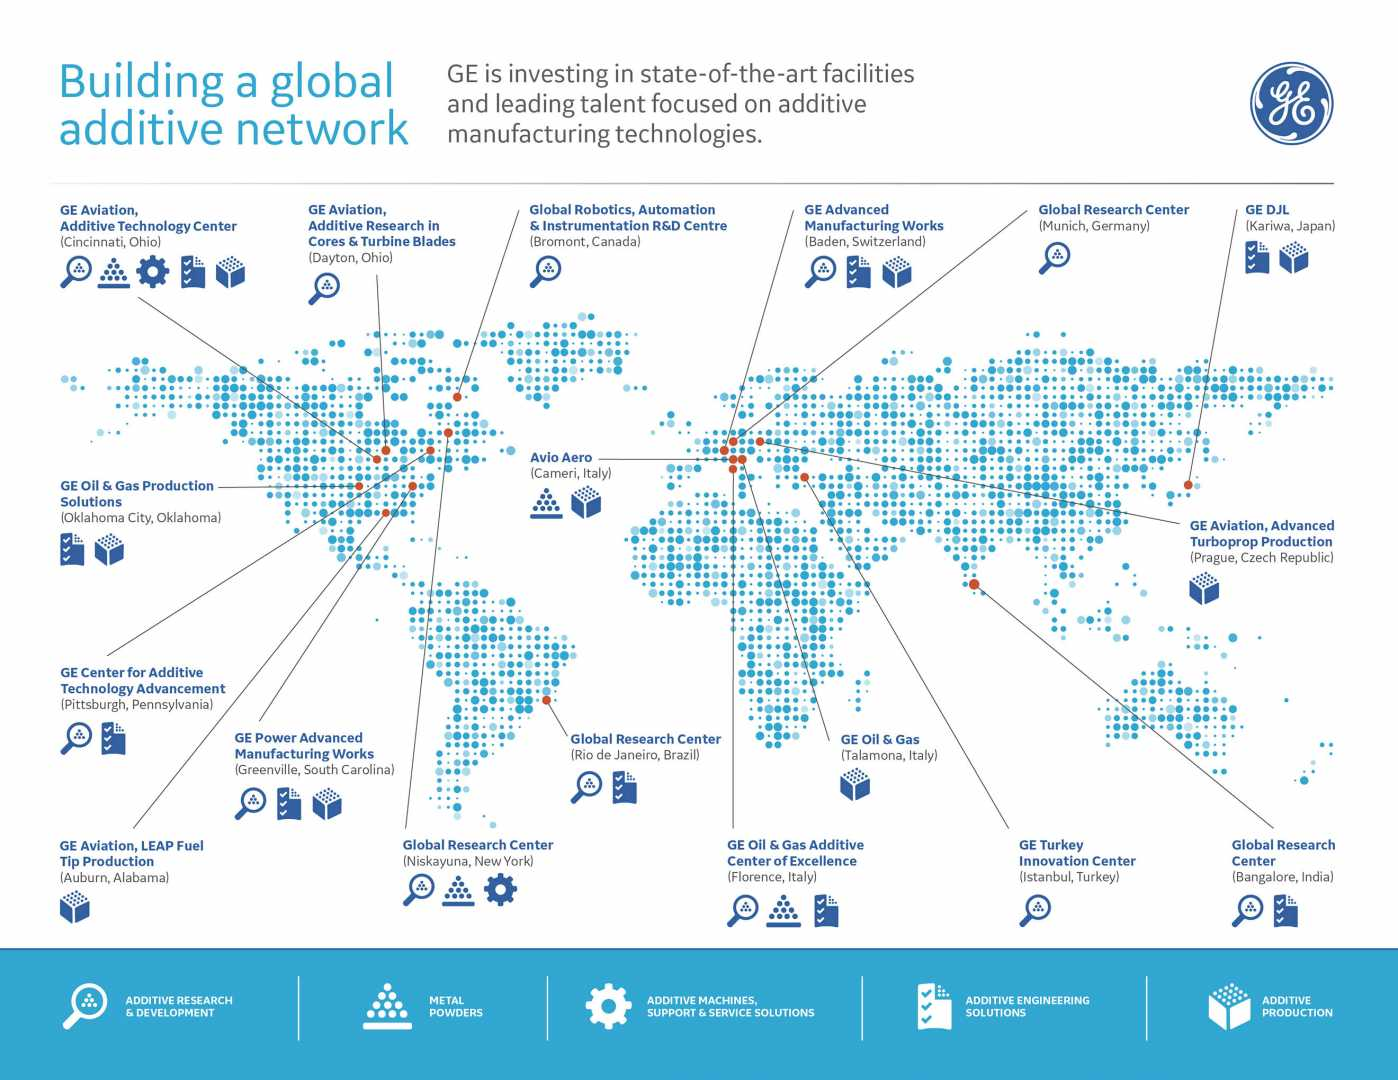 Building a global additive network - image courtesy of GE Additive